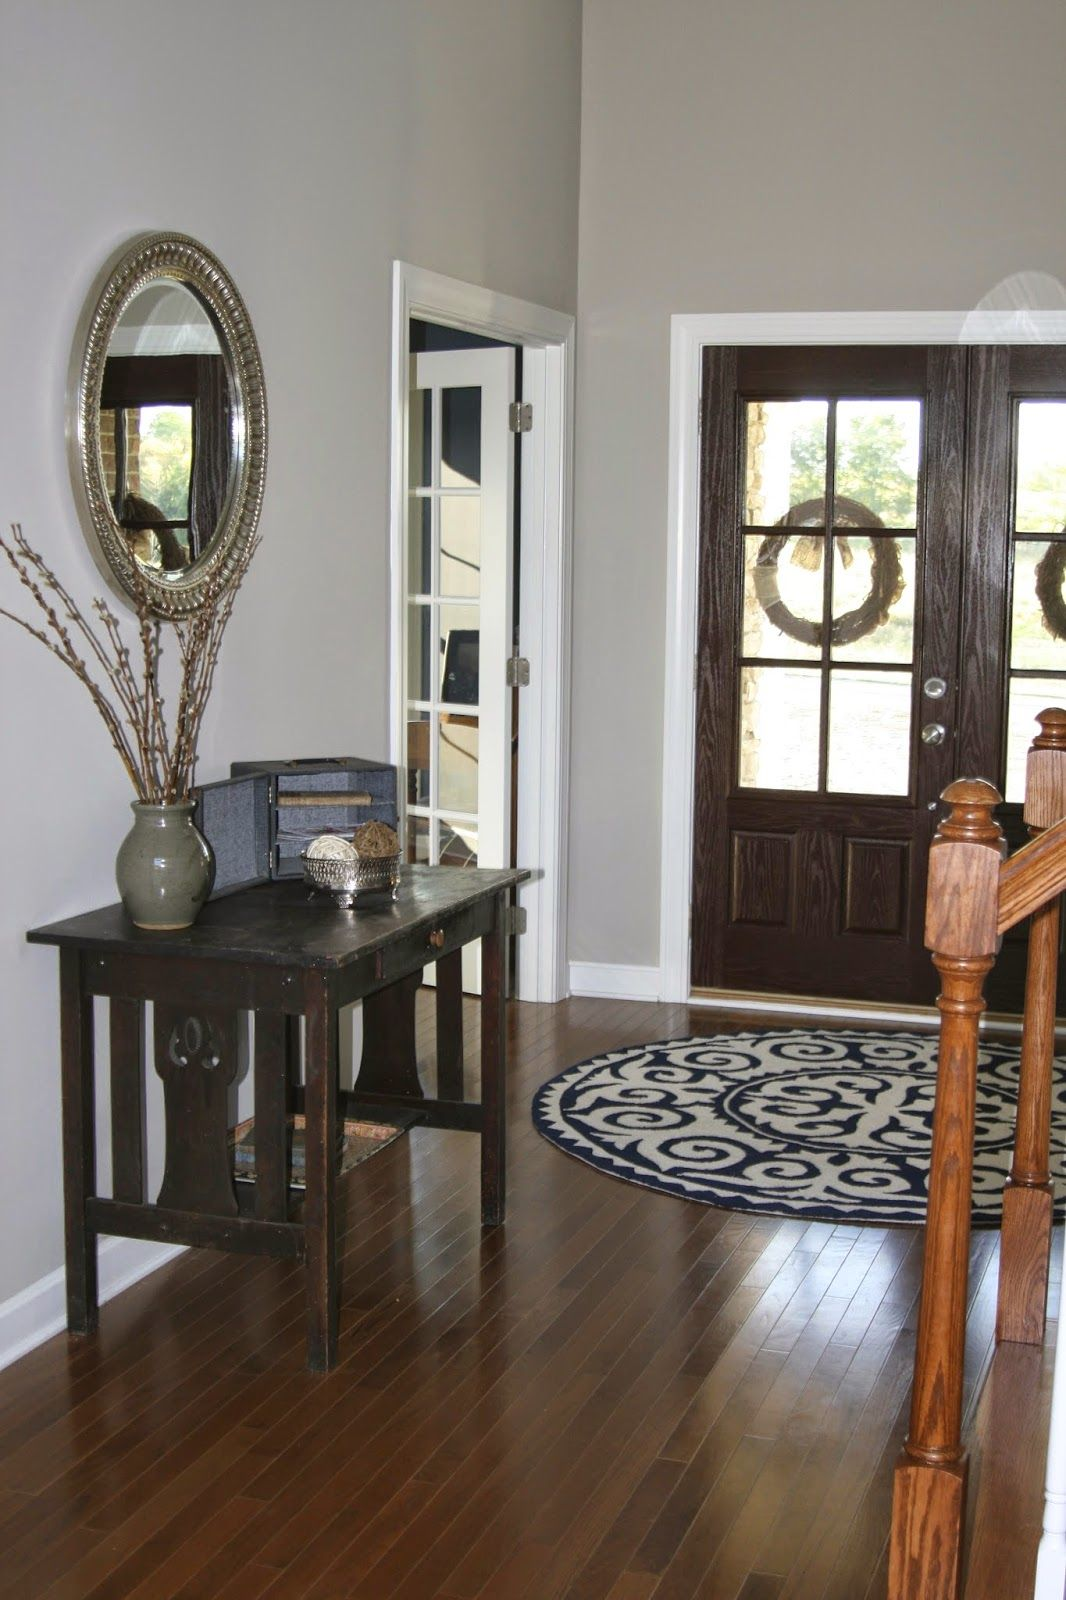 Entryway Paint Revere Pewter (Benjamin Moore). I like the